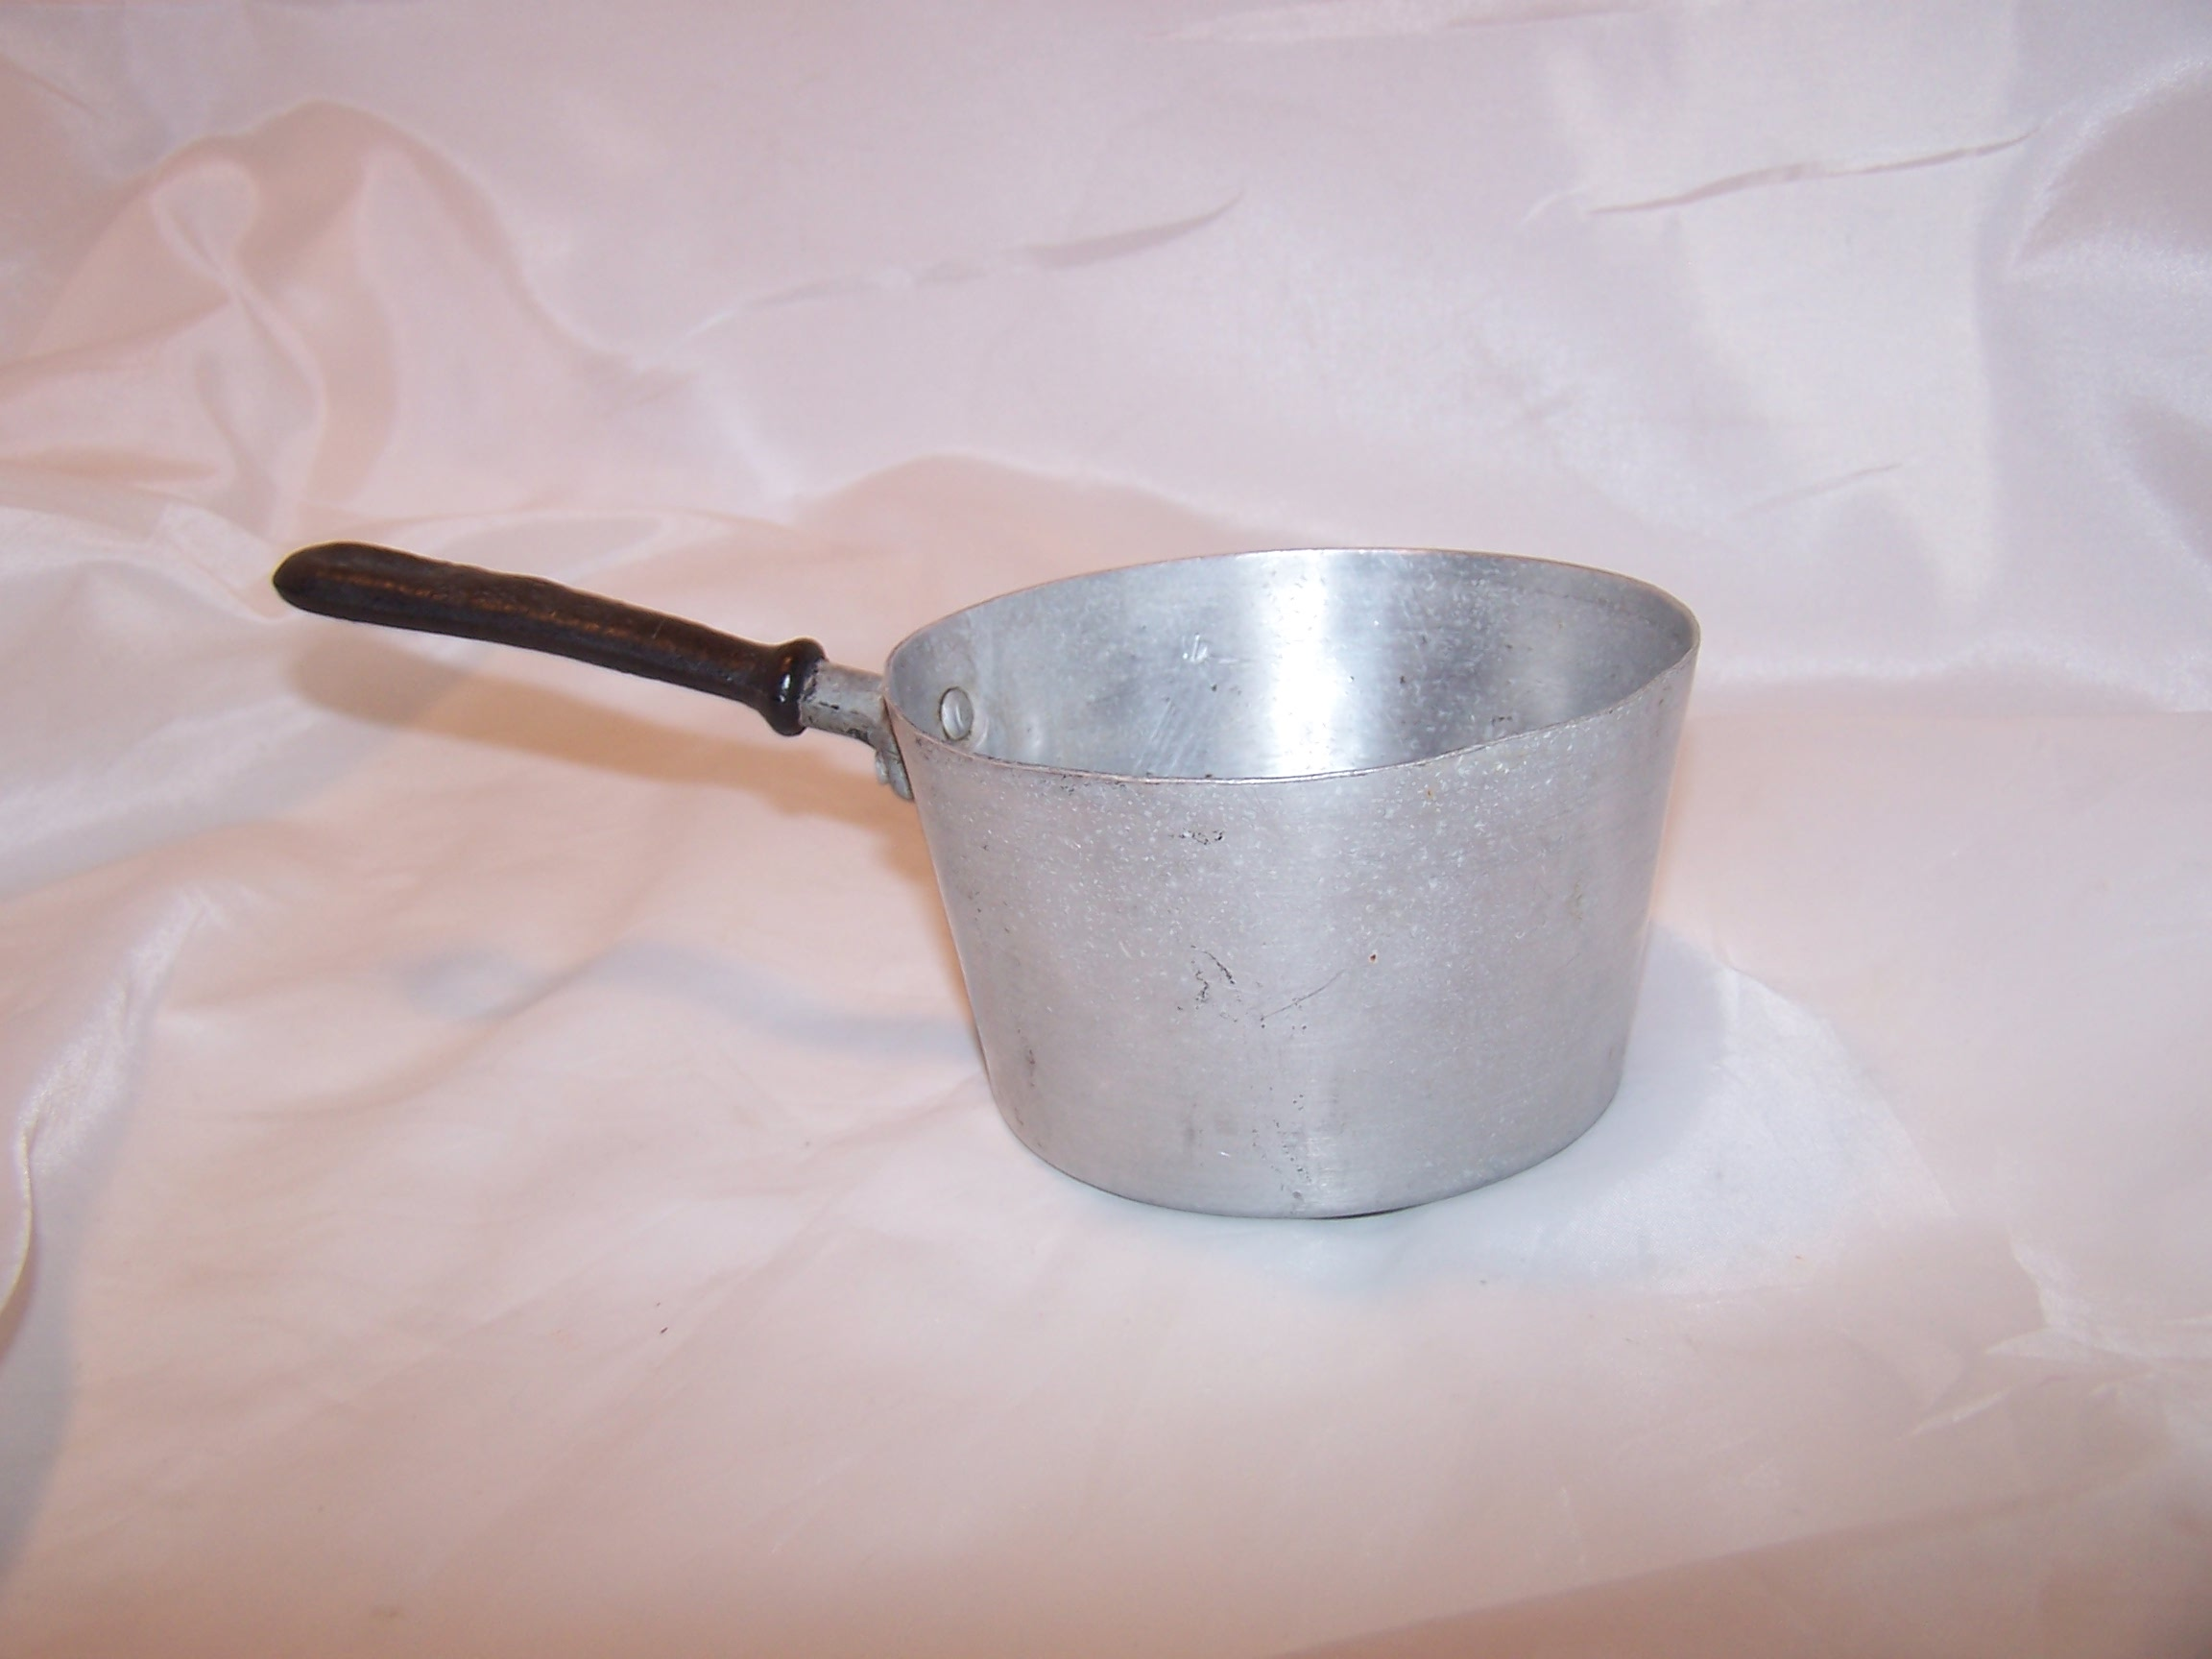 Image 4 of Toy Cook Pot, Aluminum, Vintage Childs Toy